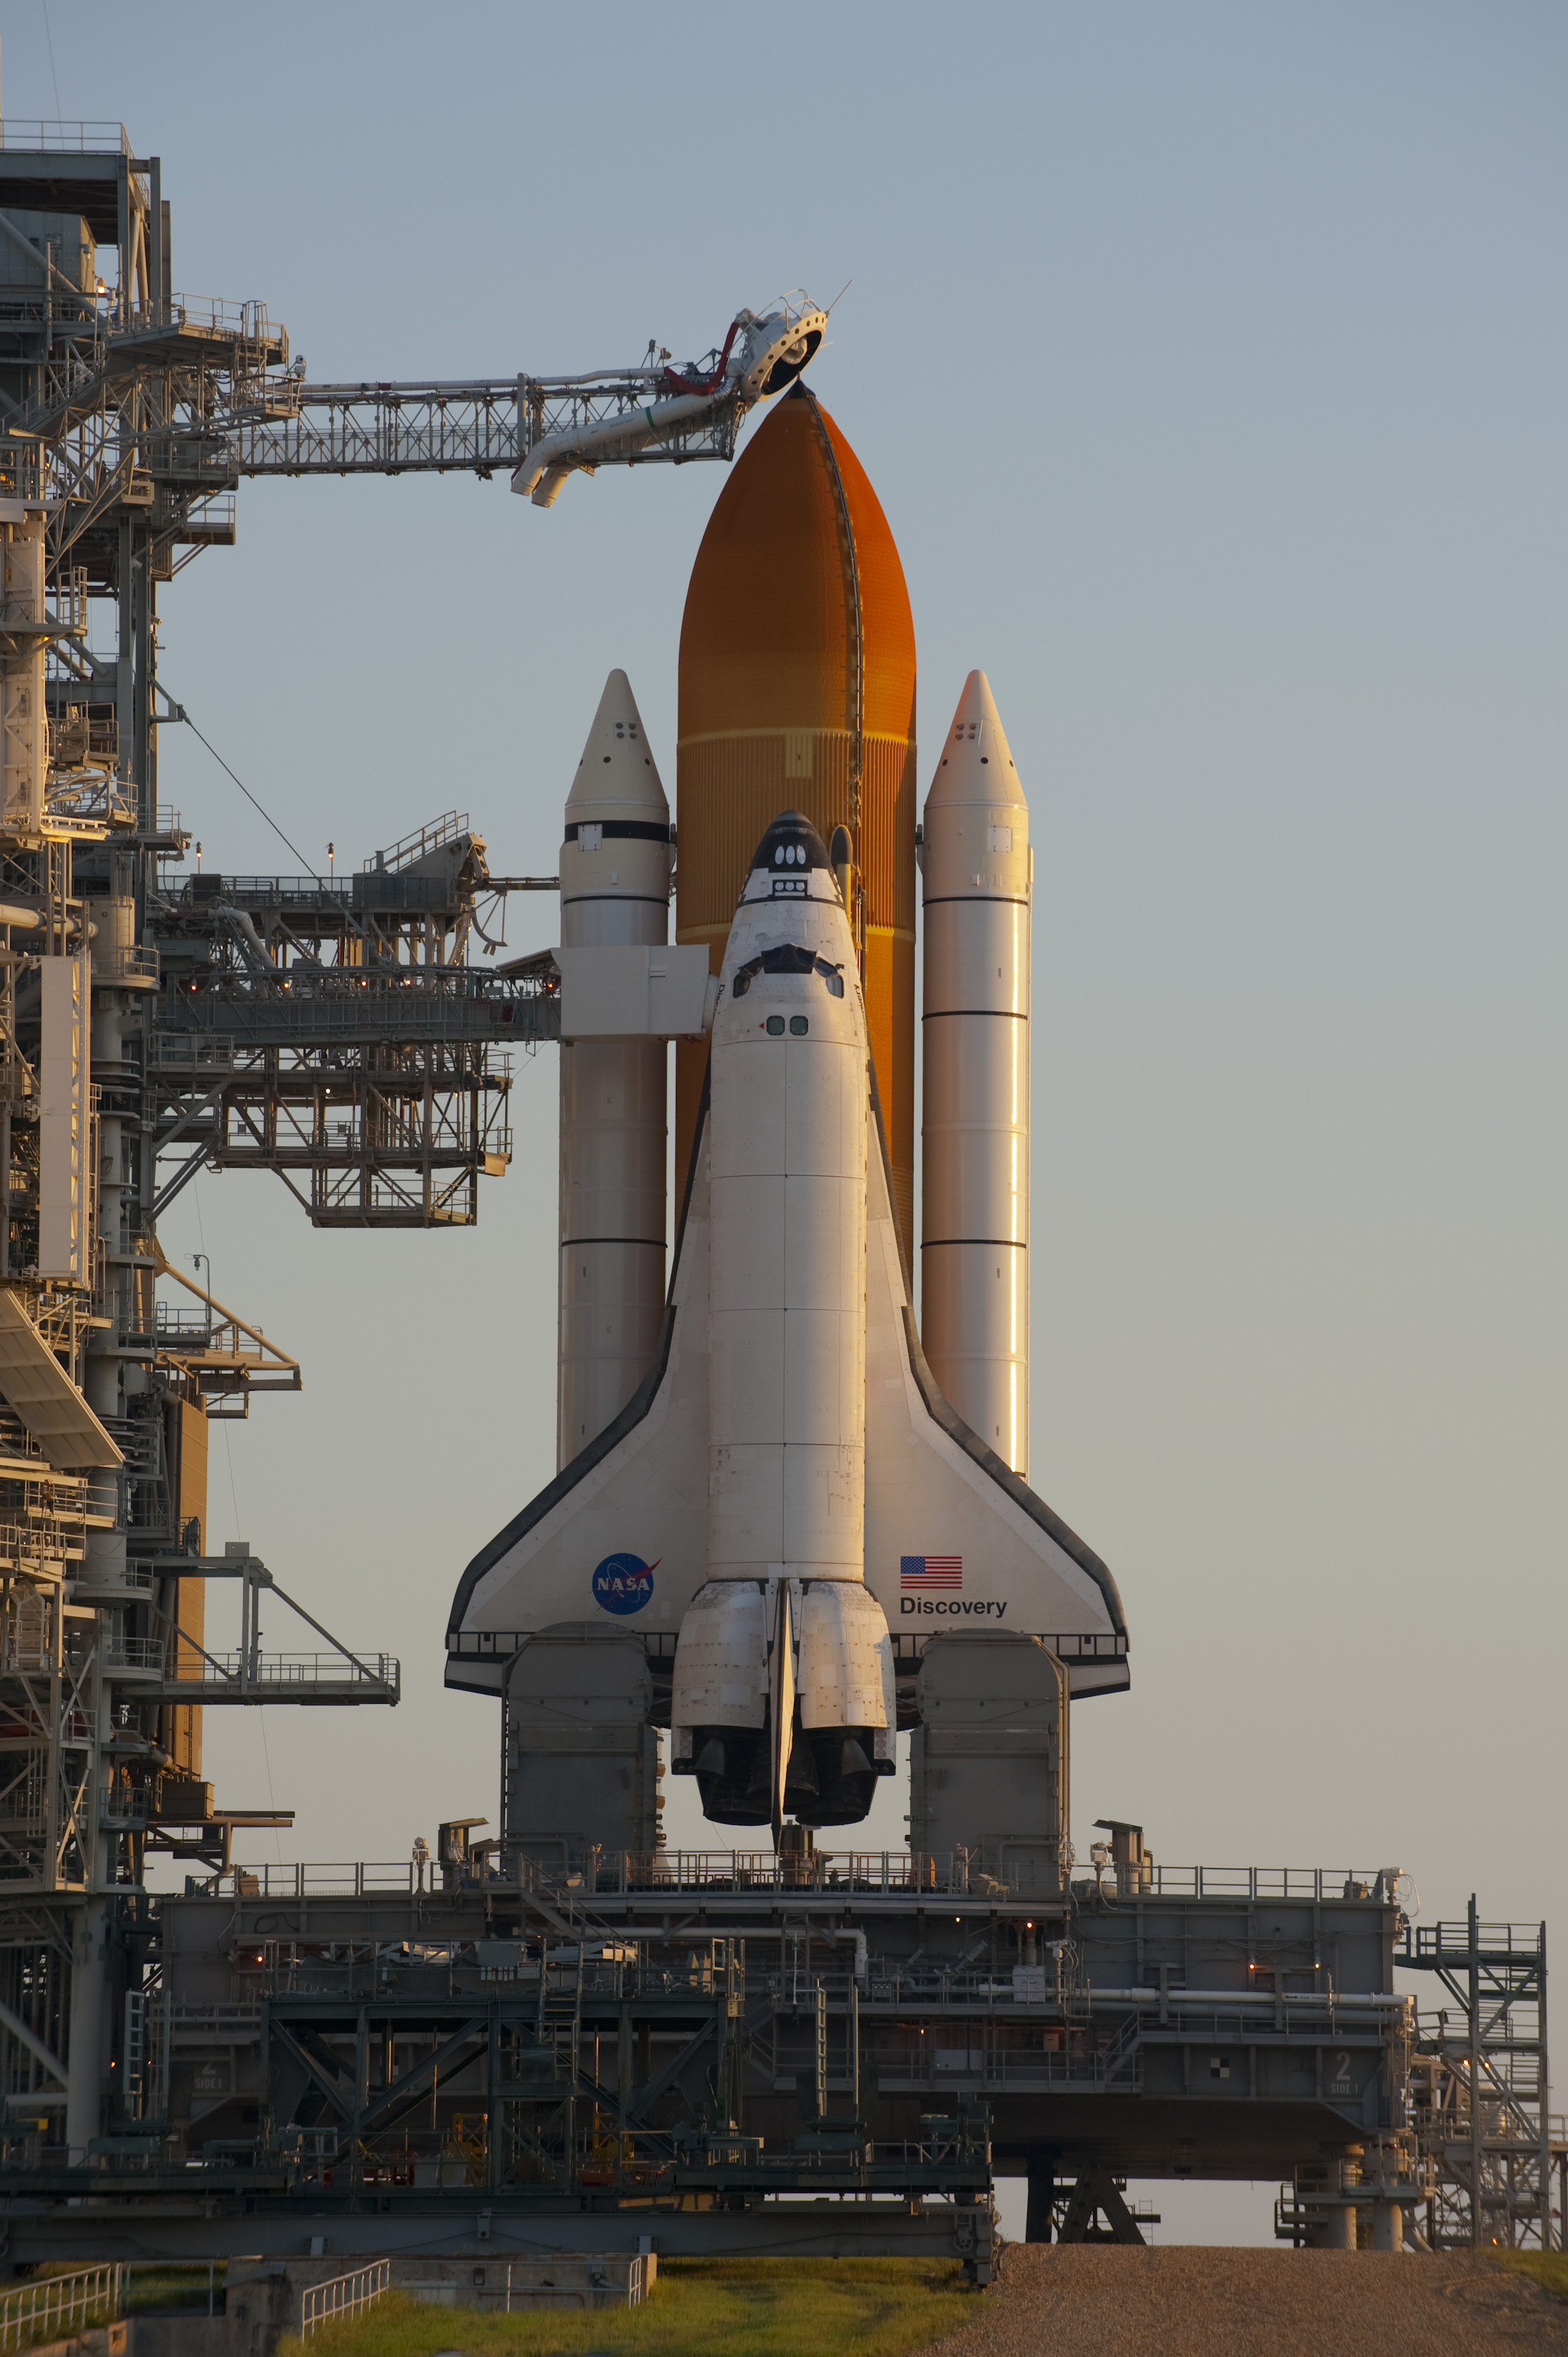 1st enterprise space shuttle launch - photo #15